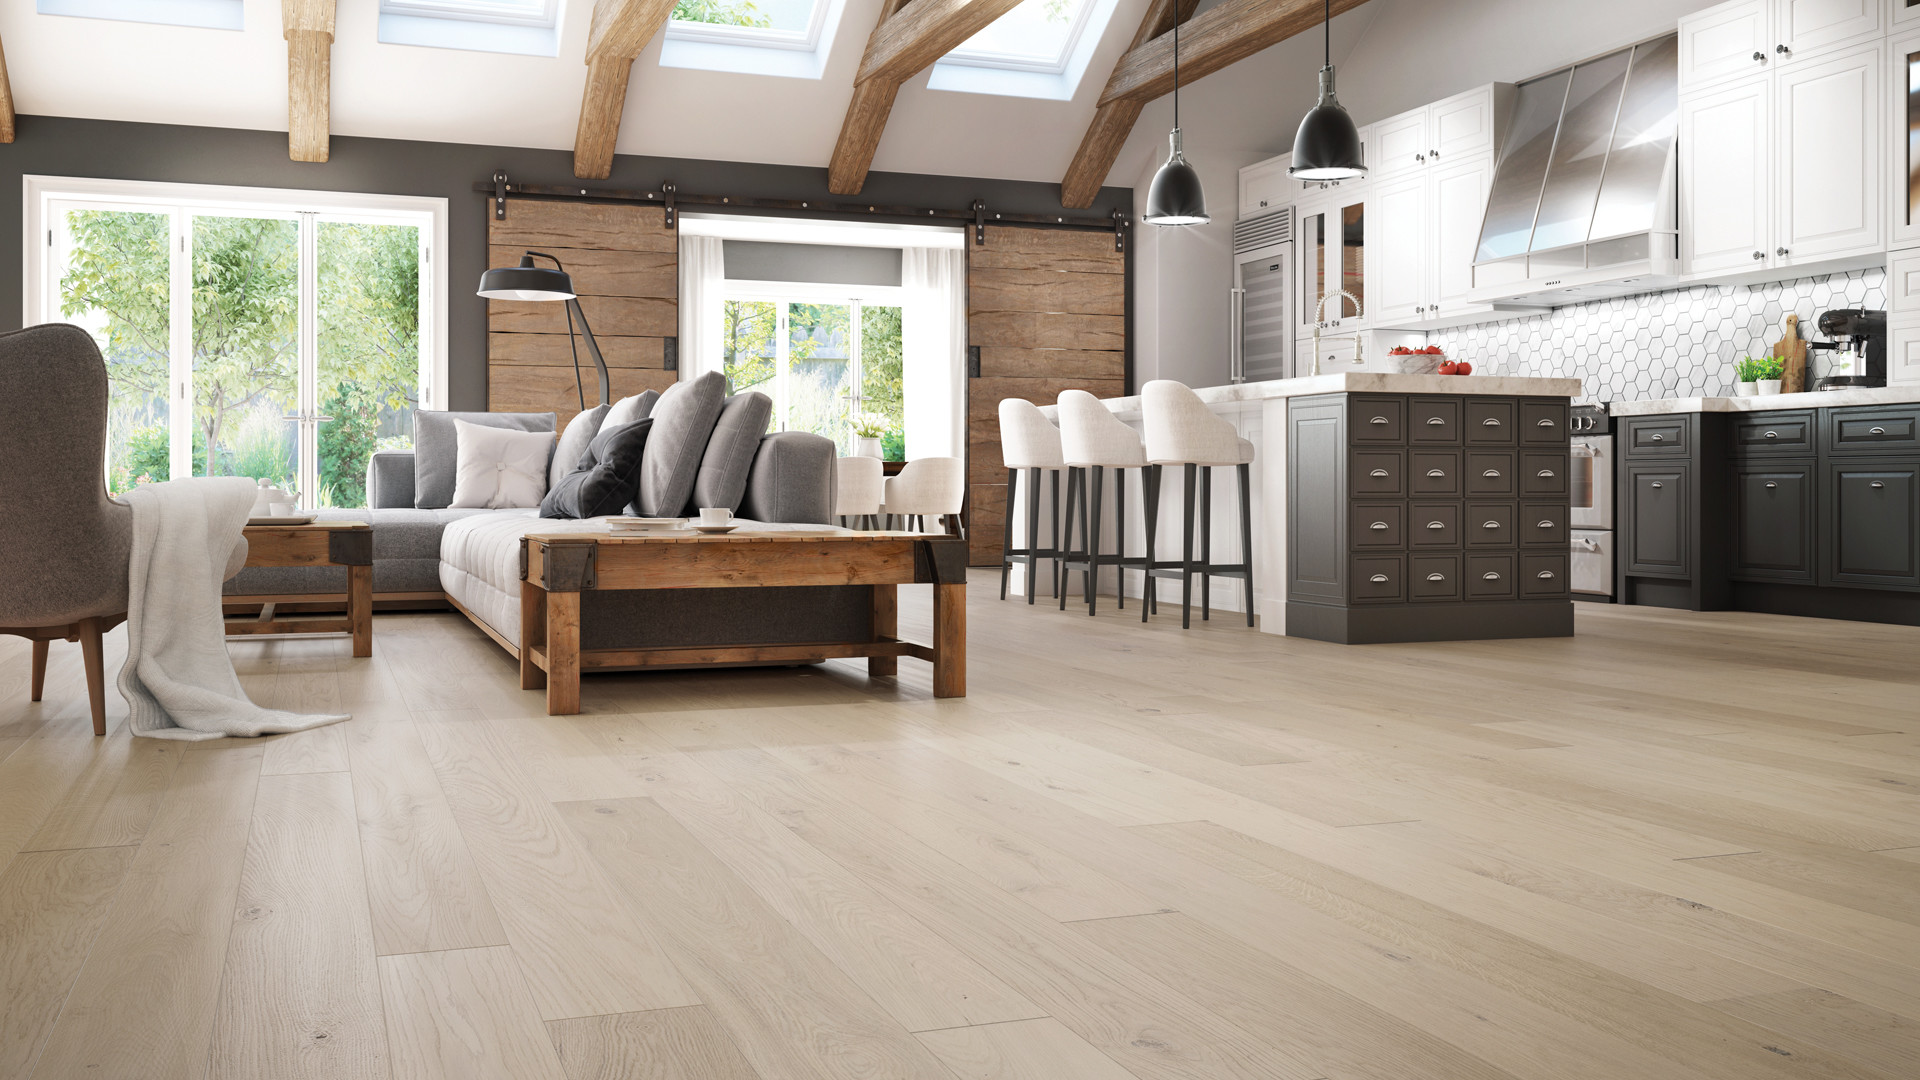 Hardwood Flooring Places Near Me Of 4 Latest Hardwood Flooring Trends Of 2018 Lauzon Flooring with Regard to This Technology Brings Your Hardwood Floors and Well Being to A New Level by Improving Indoor Air Quality by Up to 85 and Decomposing Up to 99 6 Of